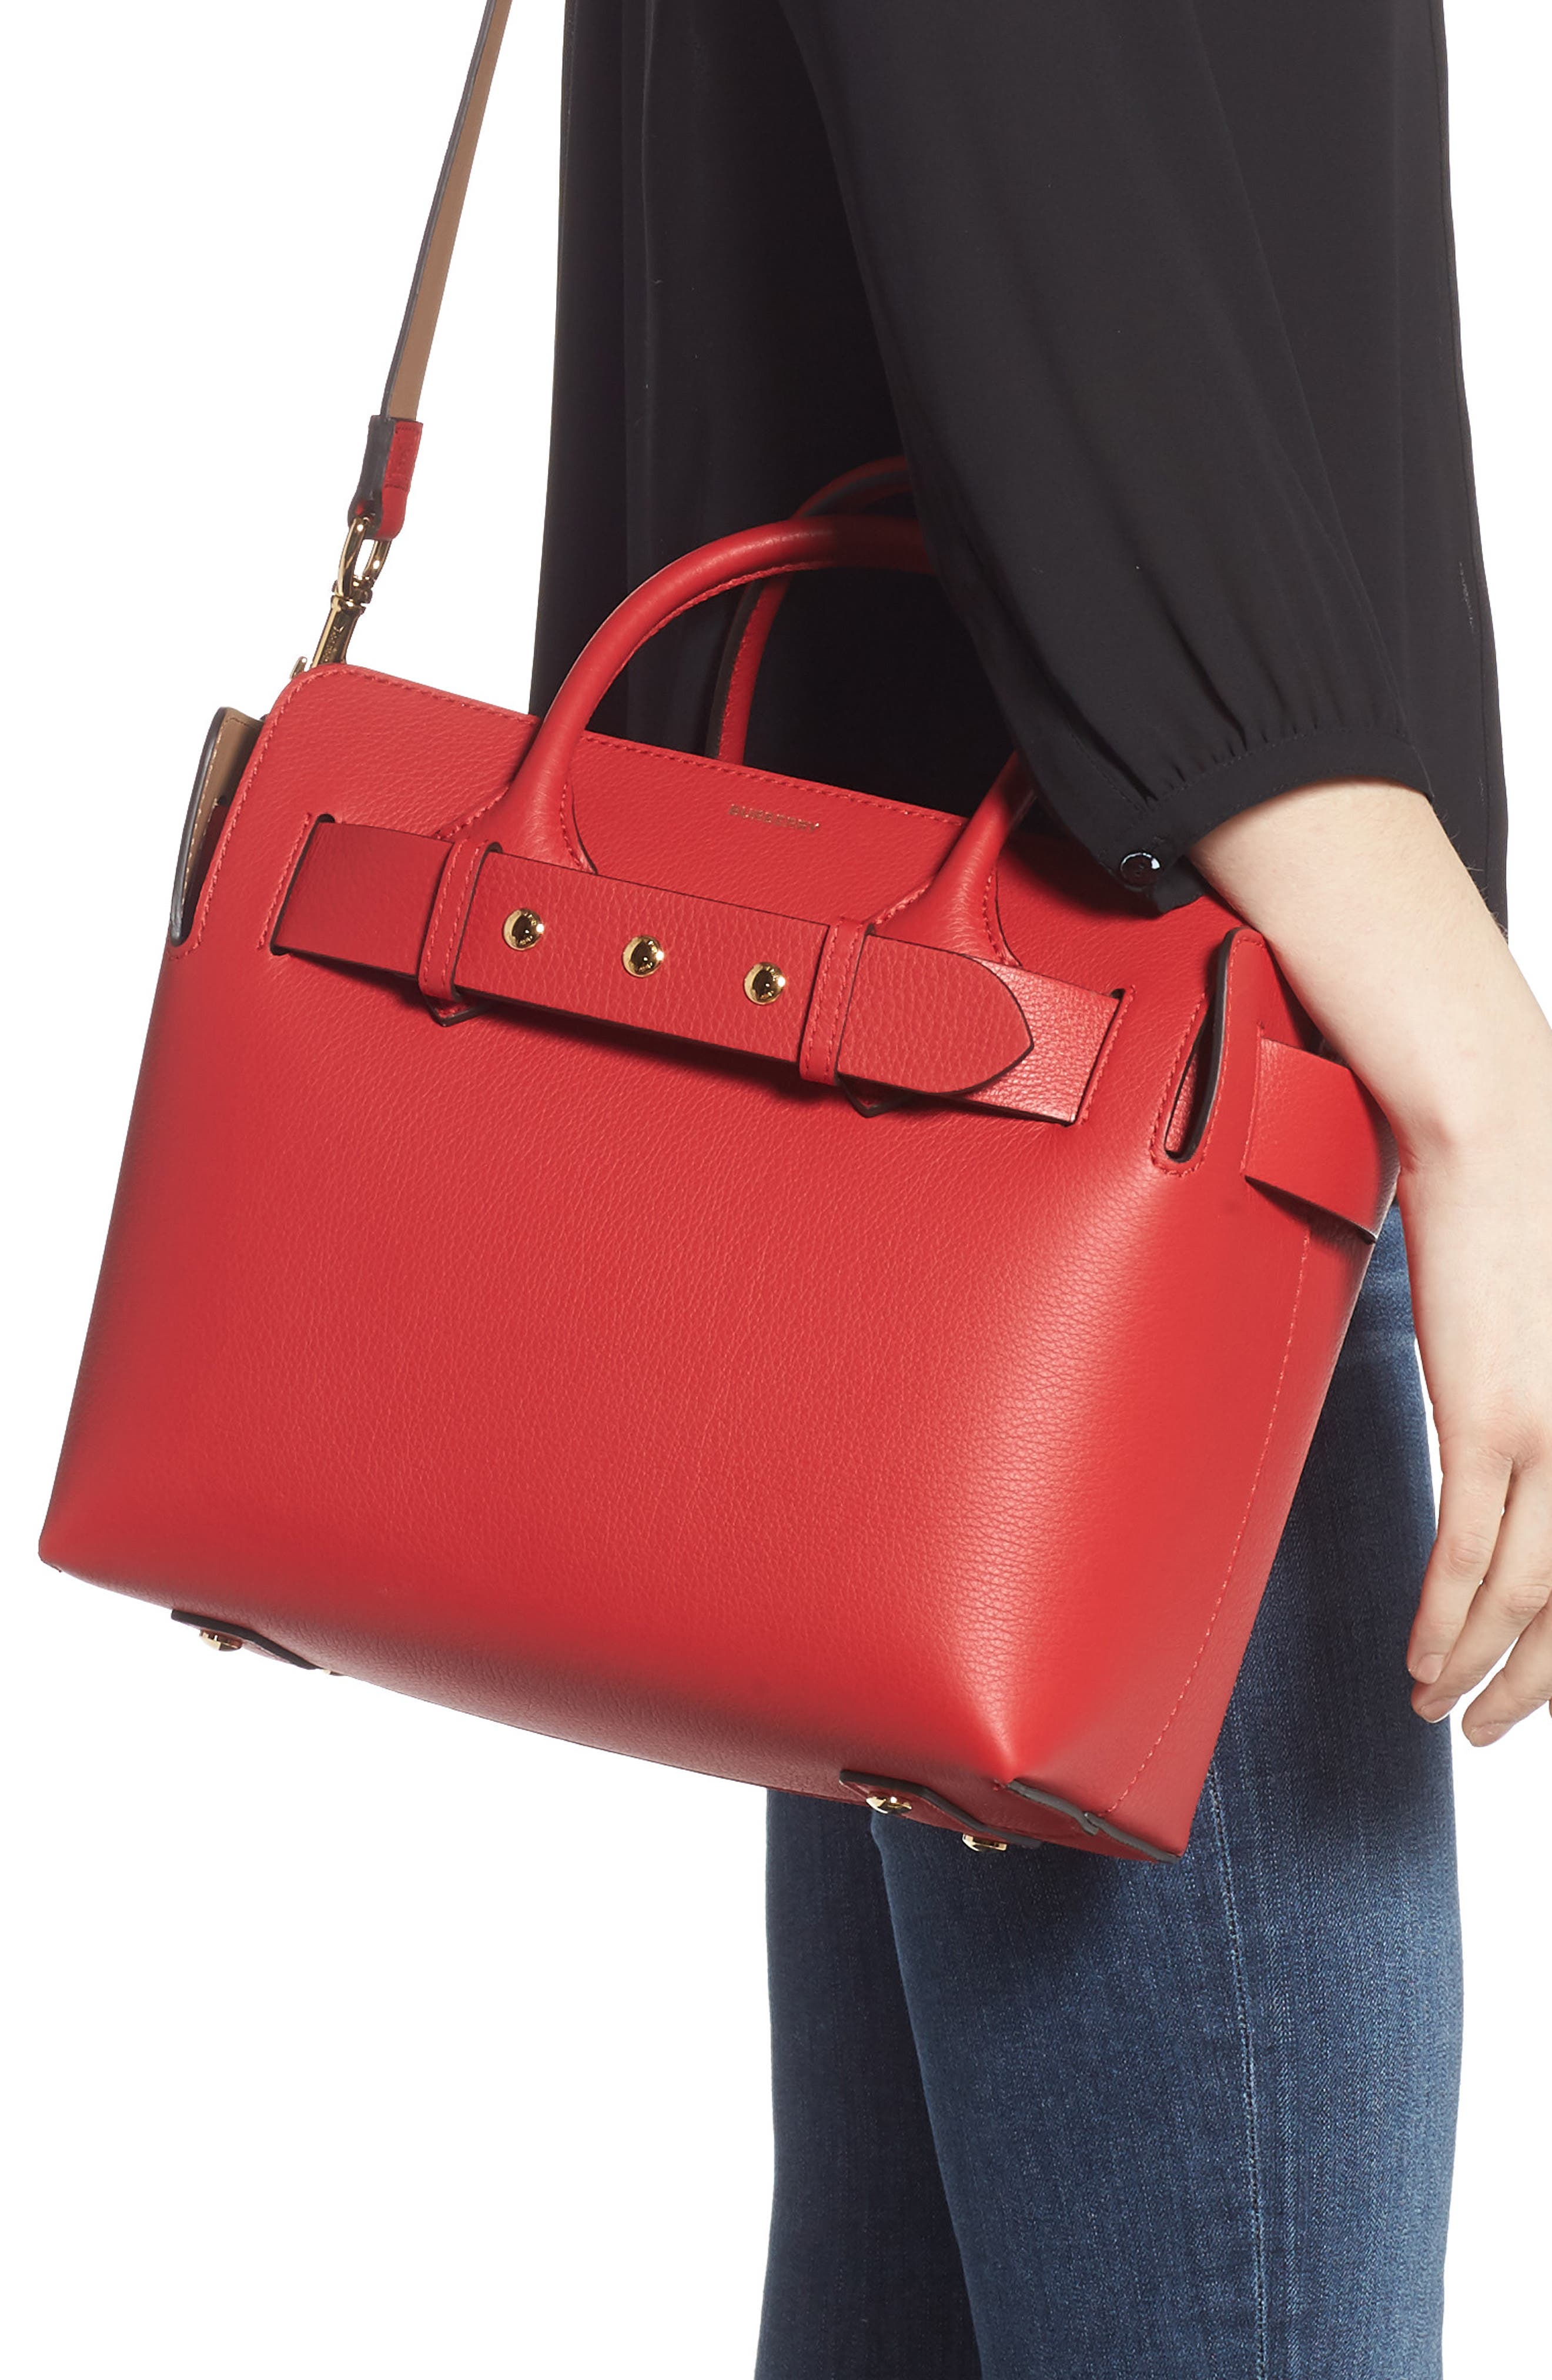 BURBERRY,                             Small Belt Leather Satchel,                             Alternate thumbnail 2, color,                             BRIGHT MILITARY RED